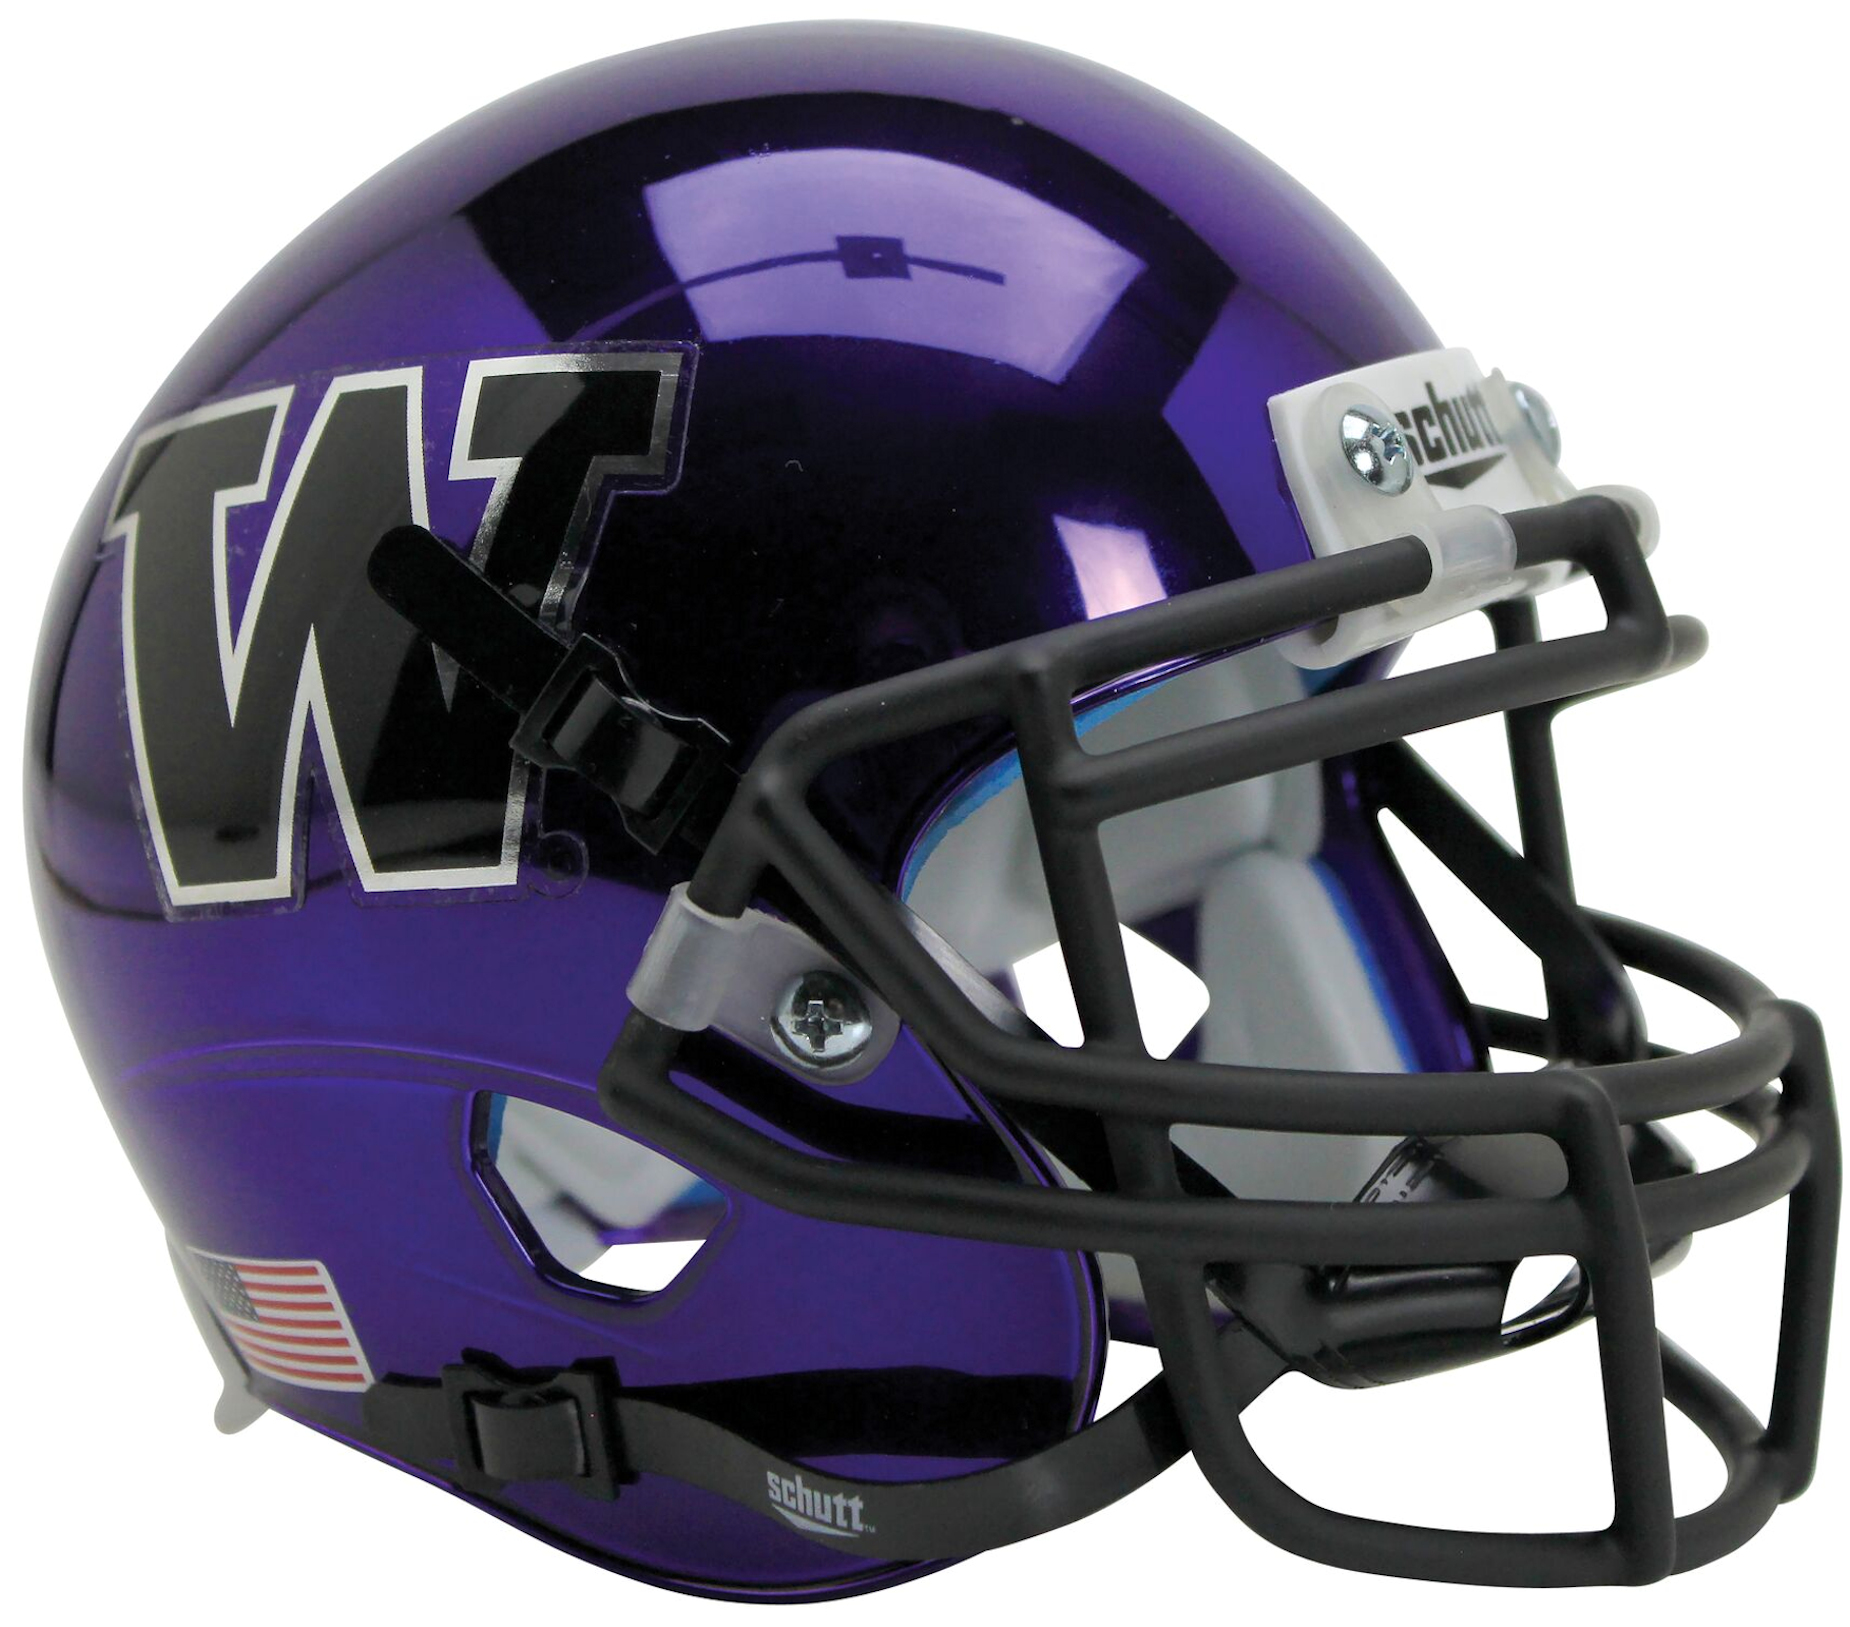 Washington Huskies Miniature Football Helmet Desk Caddy B Chrome Purple B PSM-Powers Sports Memorabilia